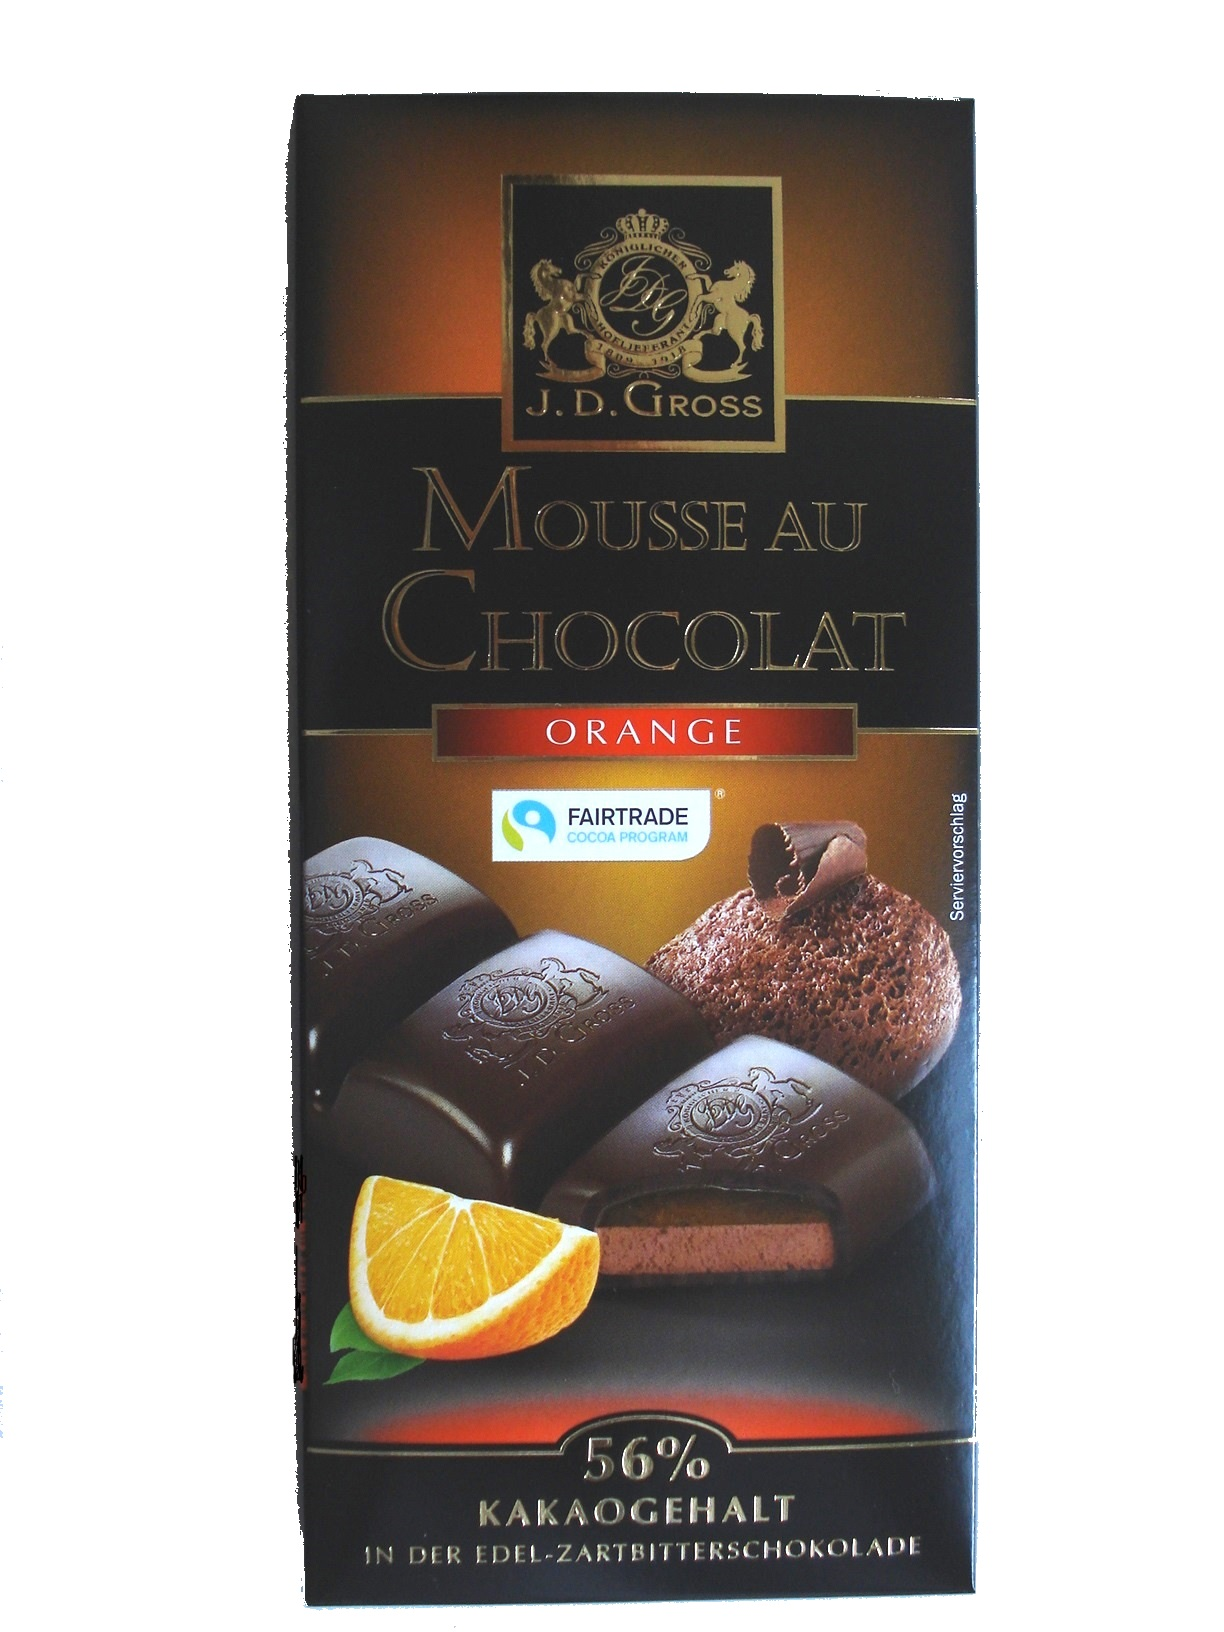 Mousse au Chocolat Orange